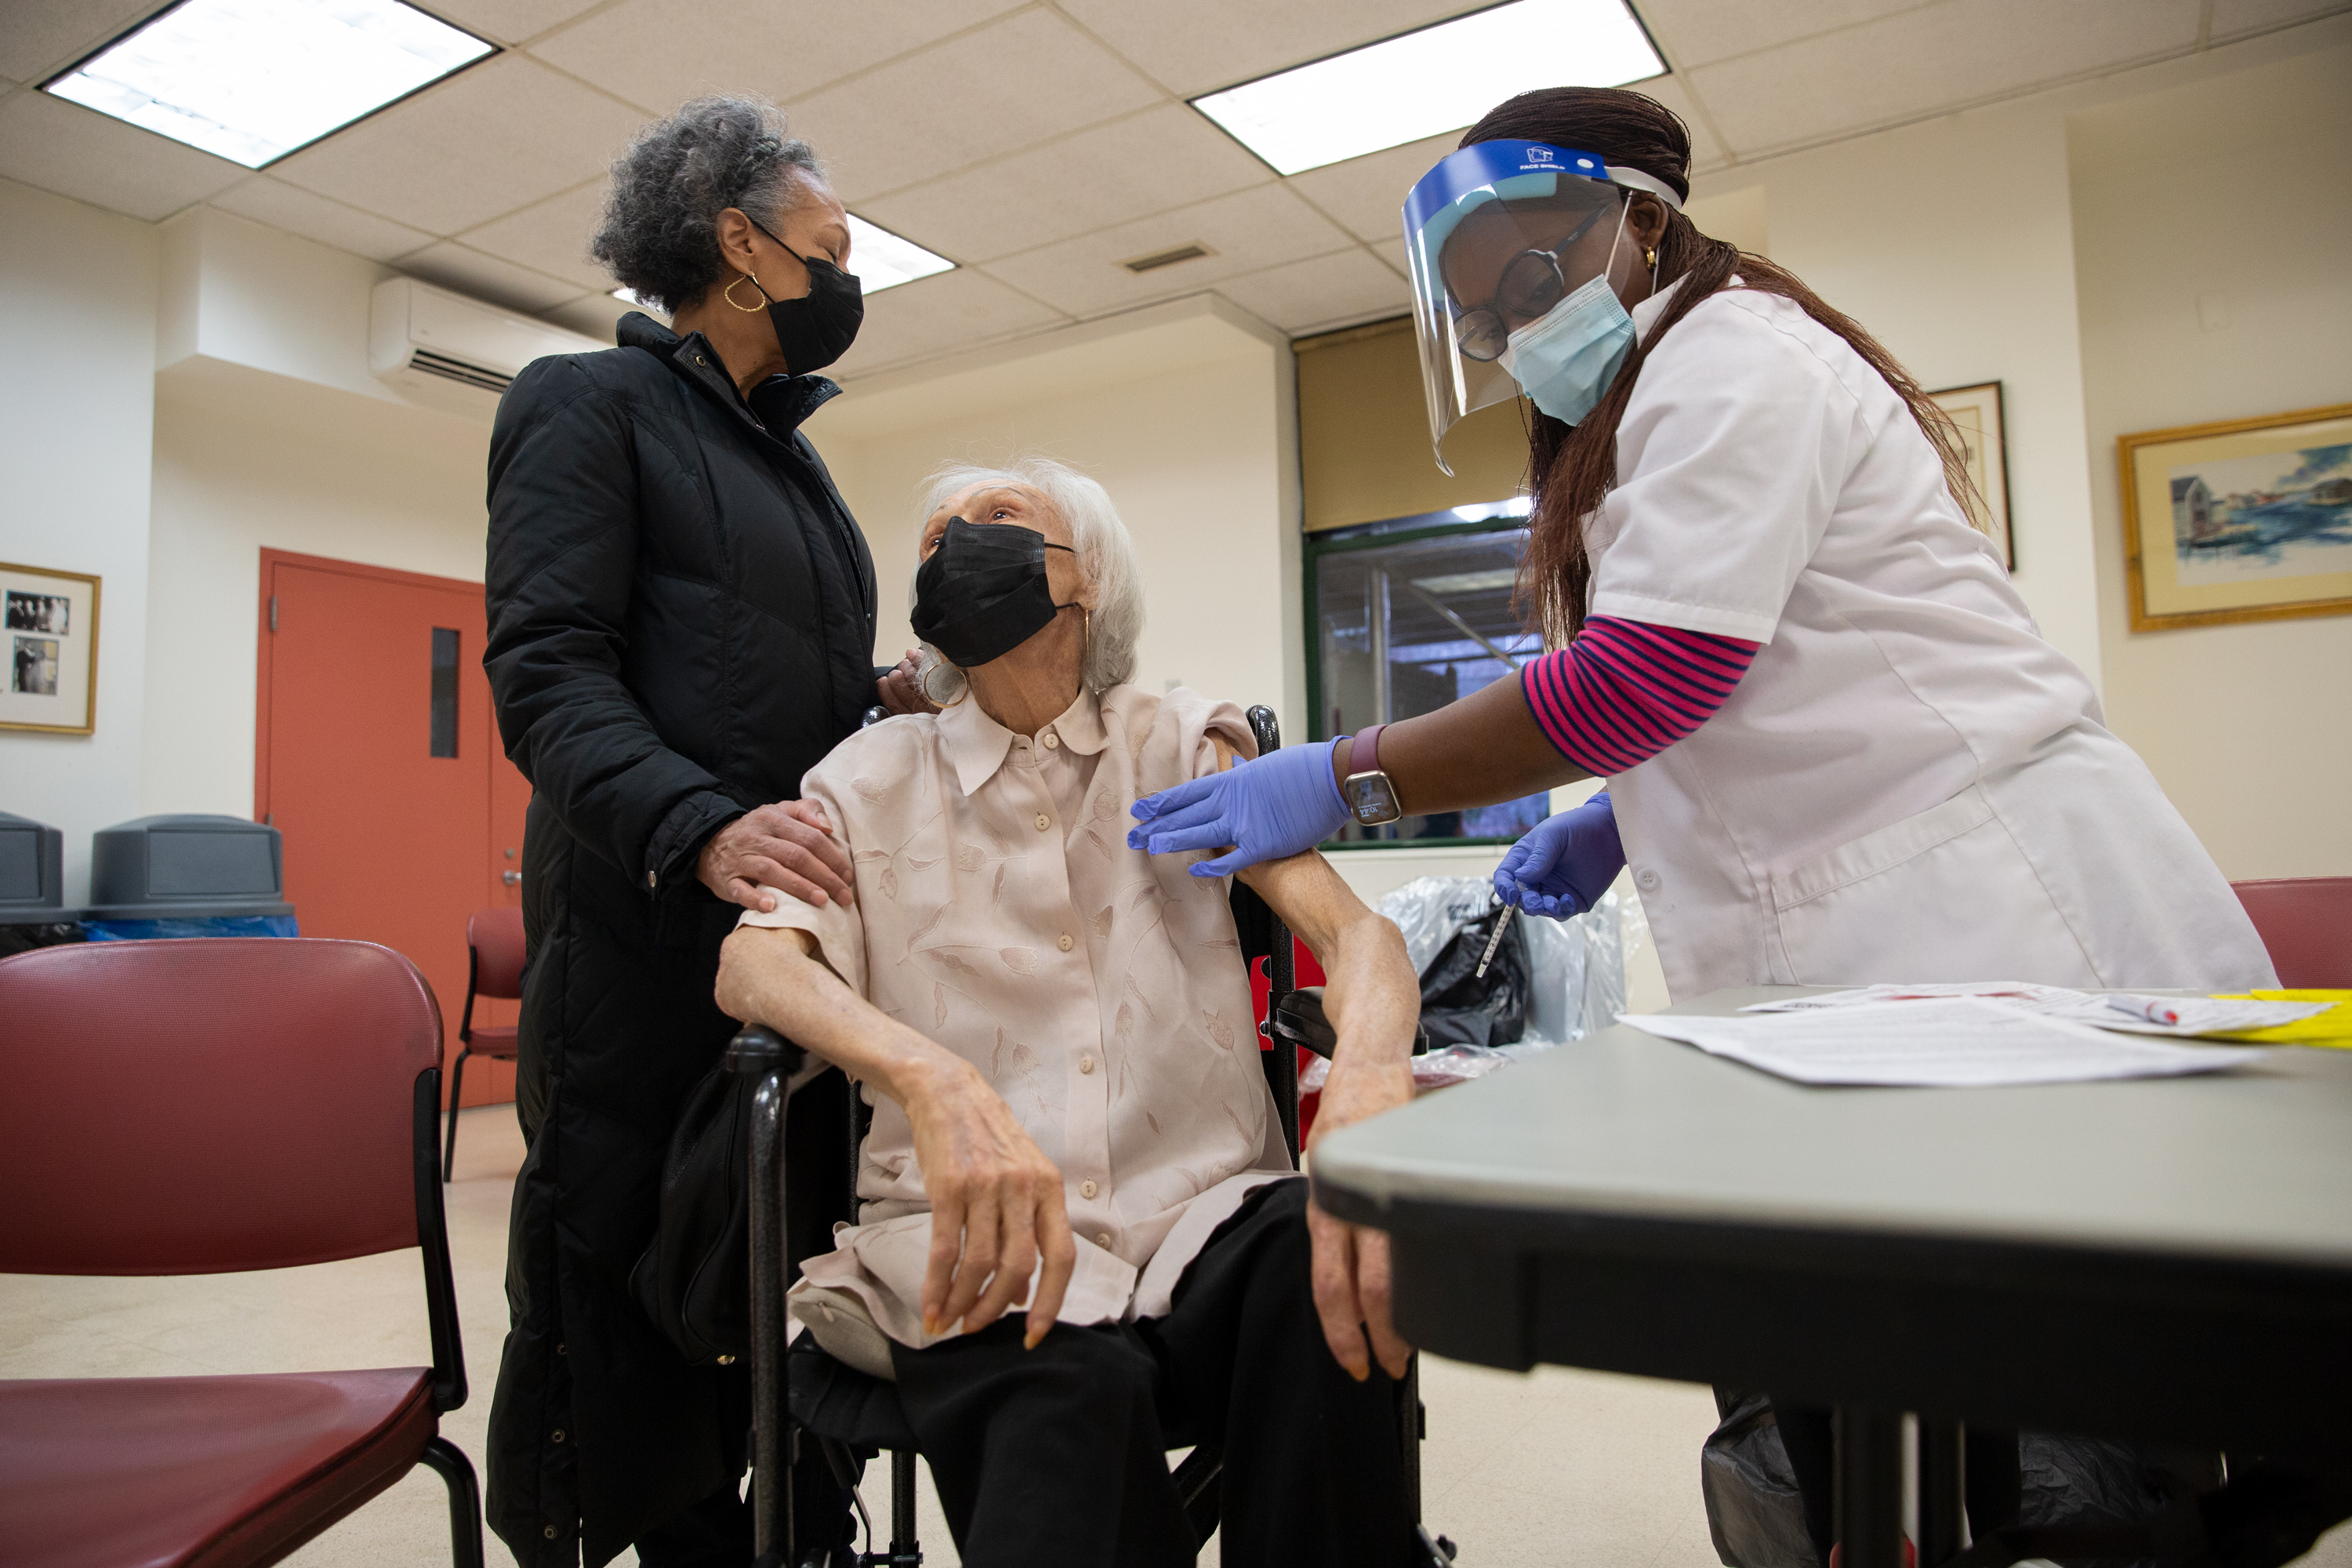 Maritza Cadrera helps comfort her 93-year-old mother, Antonia Villanueva, while the Wien House resident receives her second coronavirus vaccine, March 3, 2021.